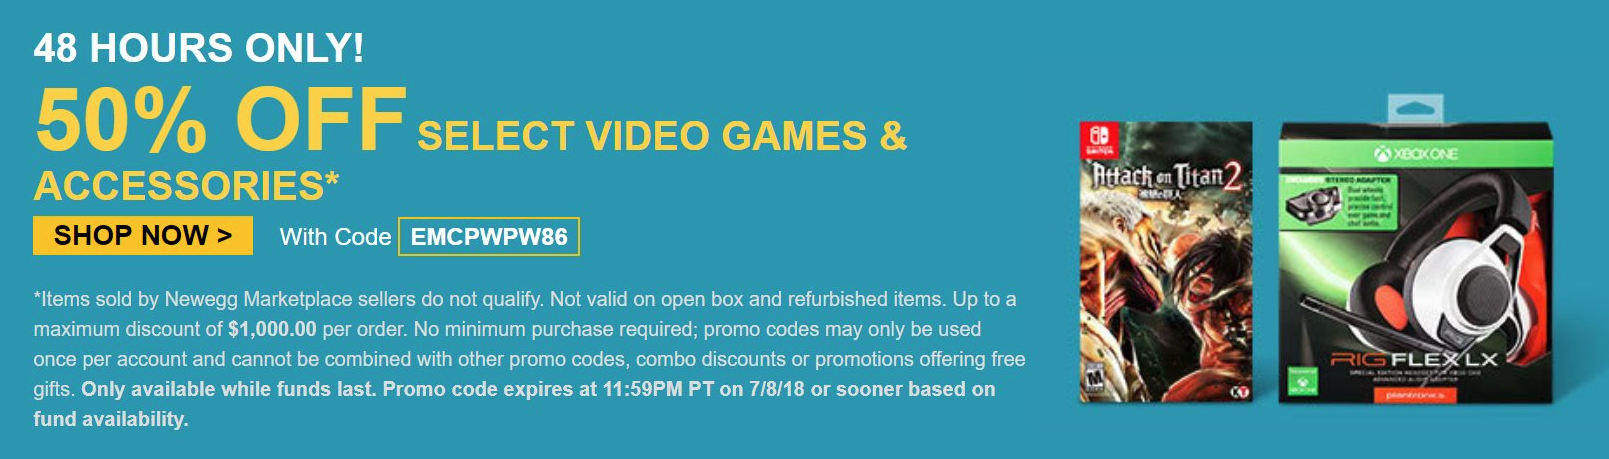 Newegg Is Offering More Than 50% Off on Select Video Games